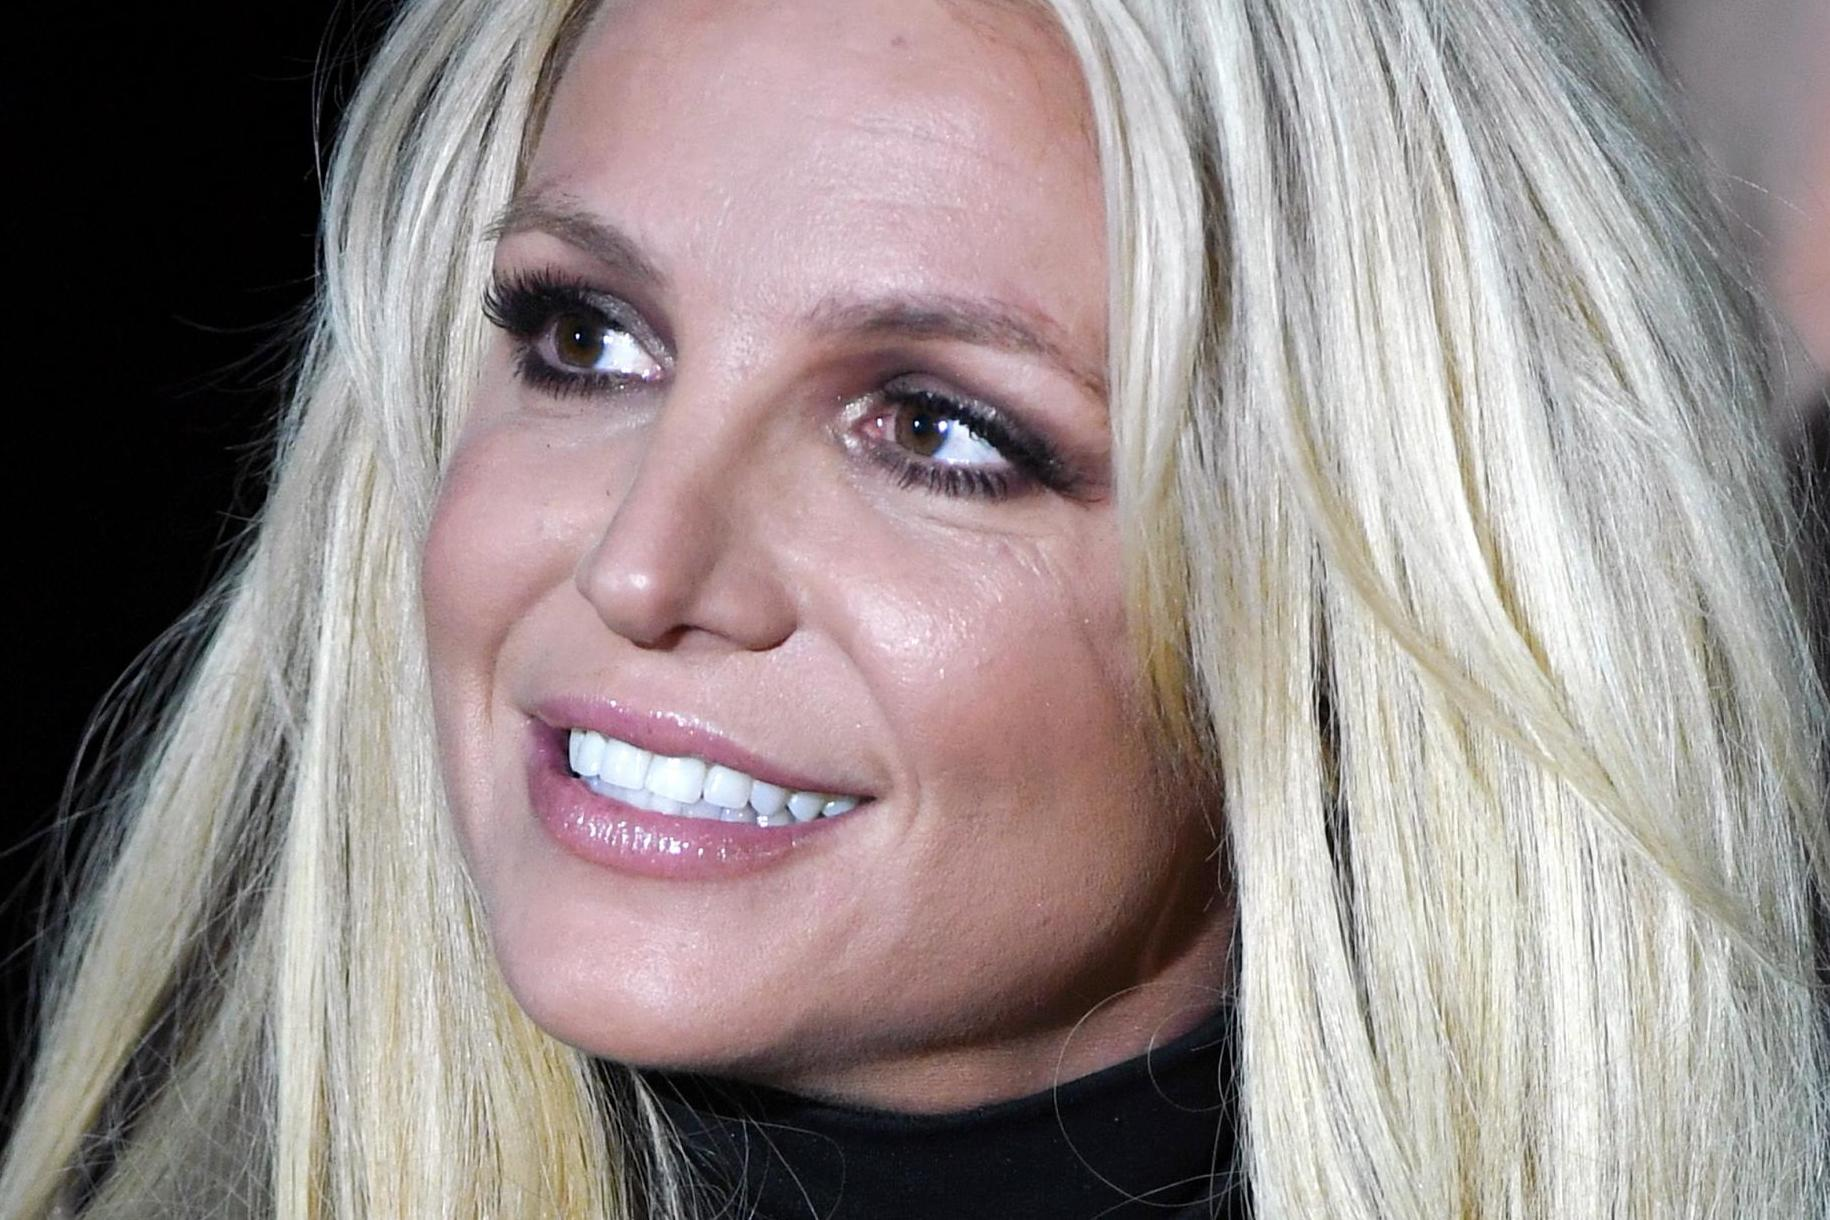 Britney Spears breaks silence after checking into mental health facility